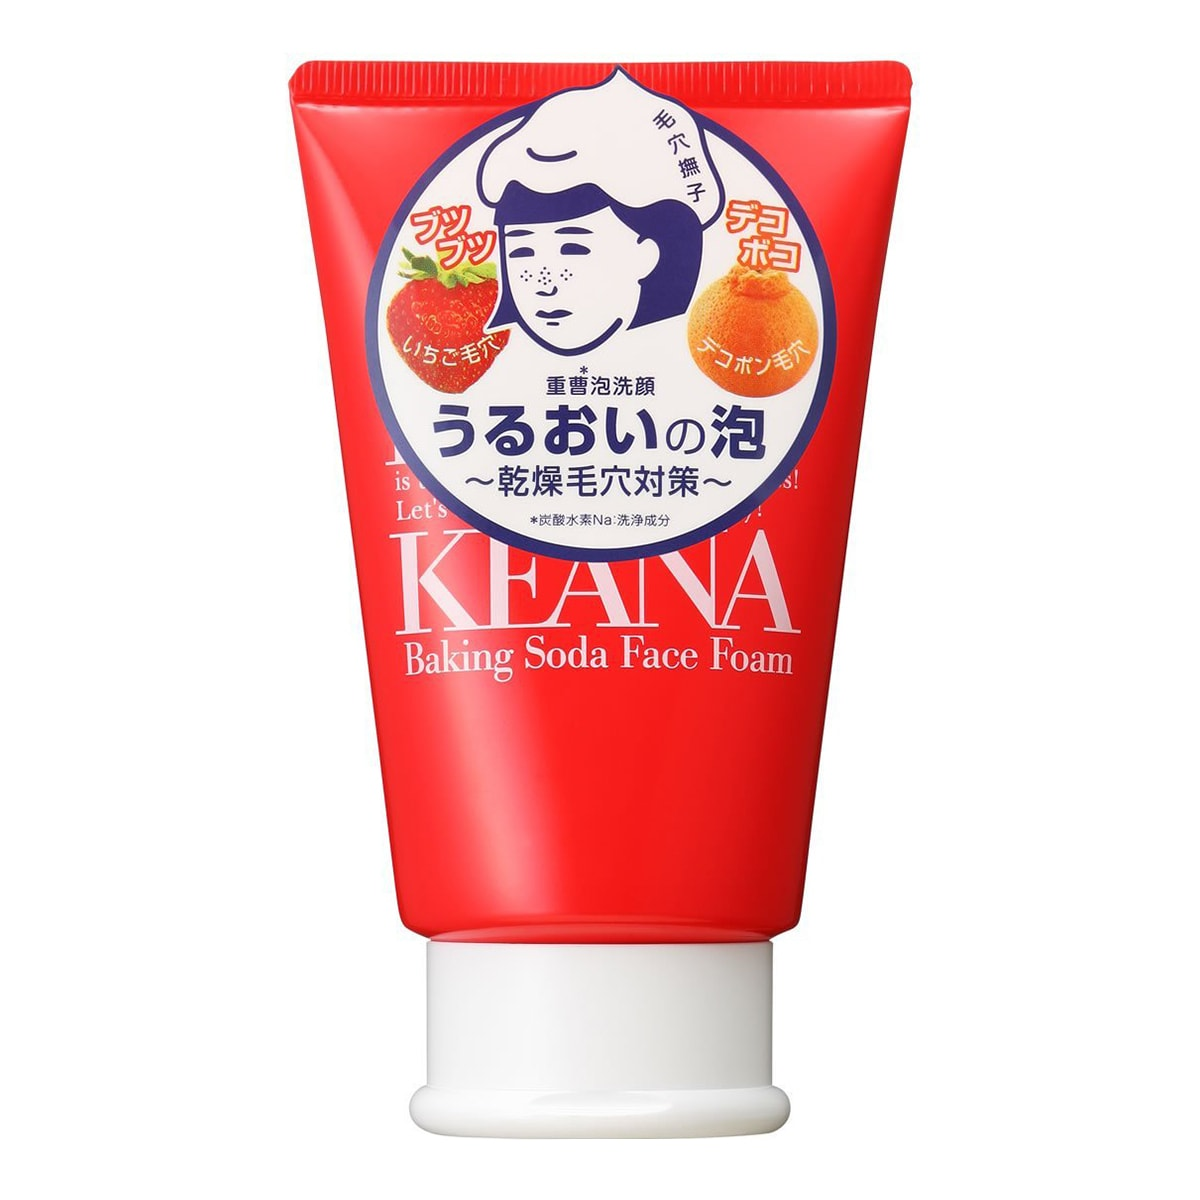 ISHIZAWA KEANA Baking Soda Face Foam 100g